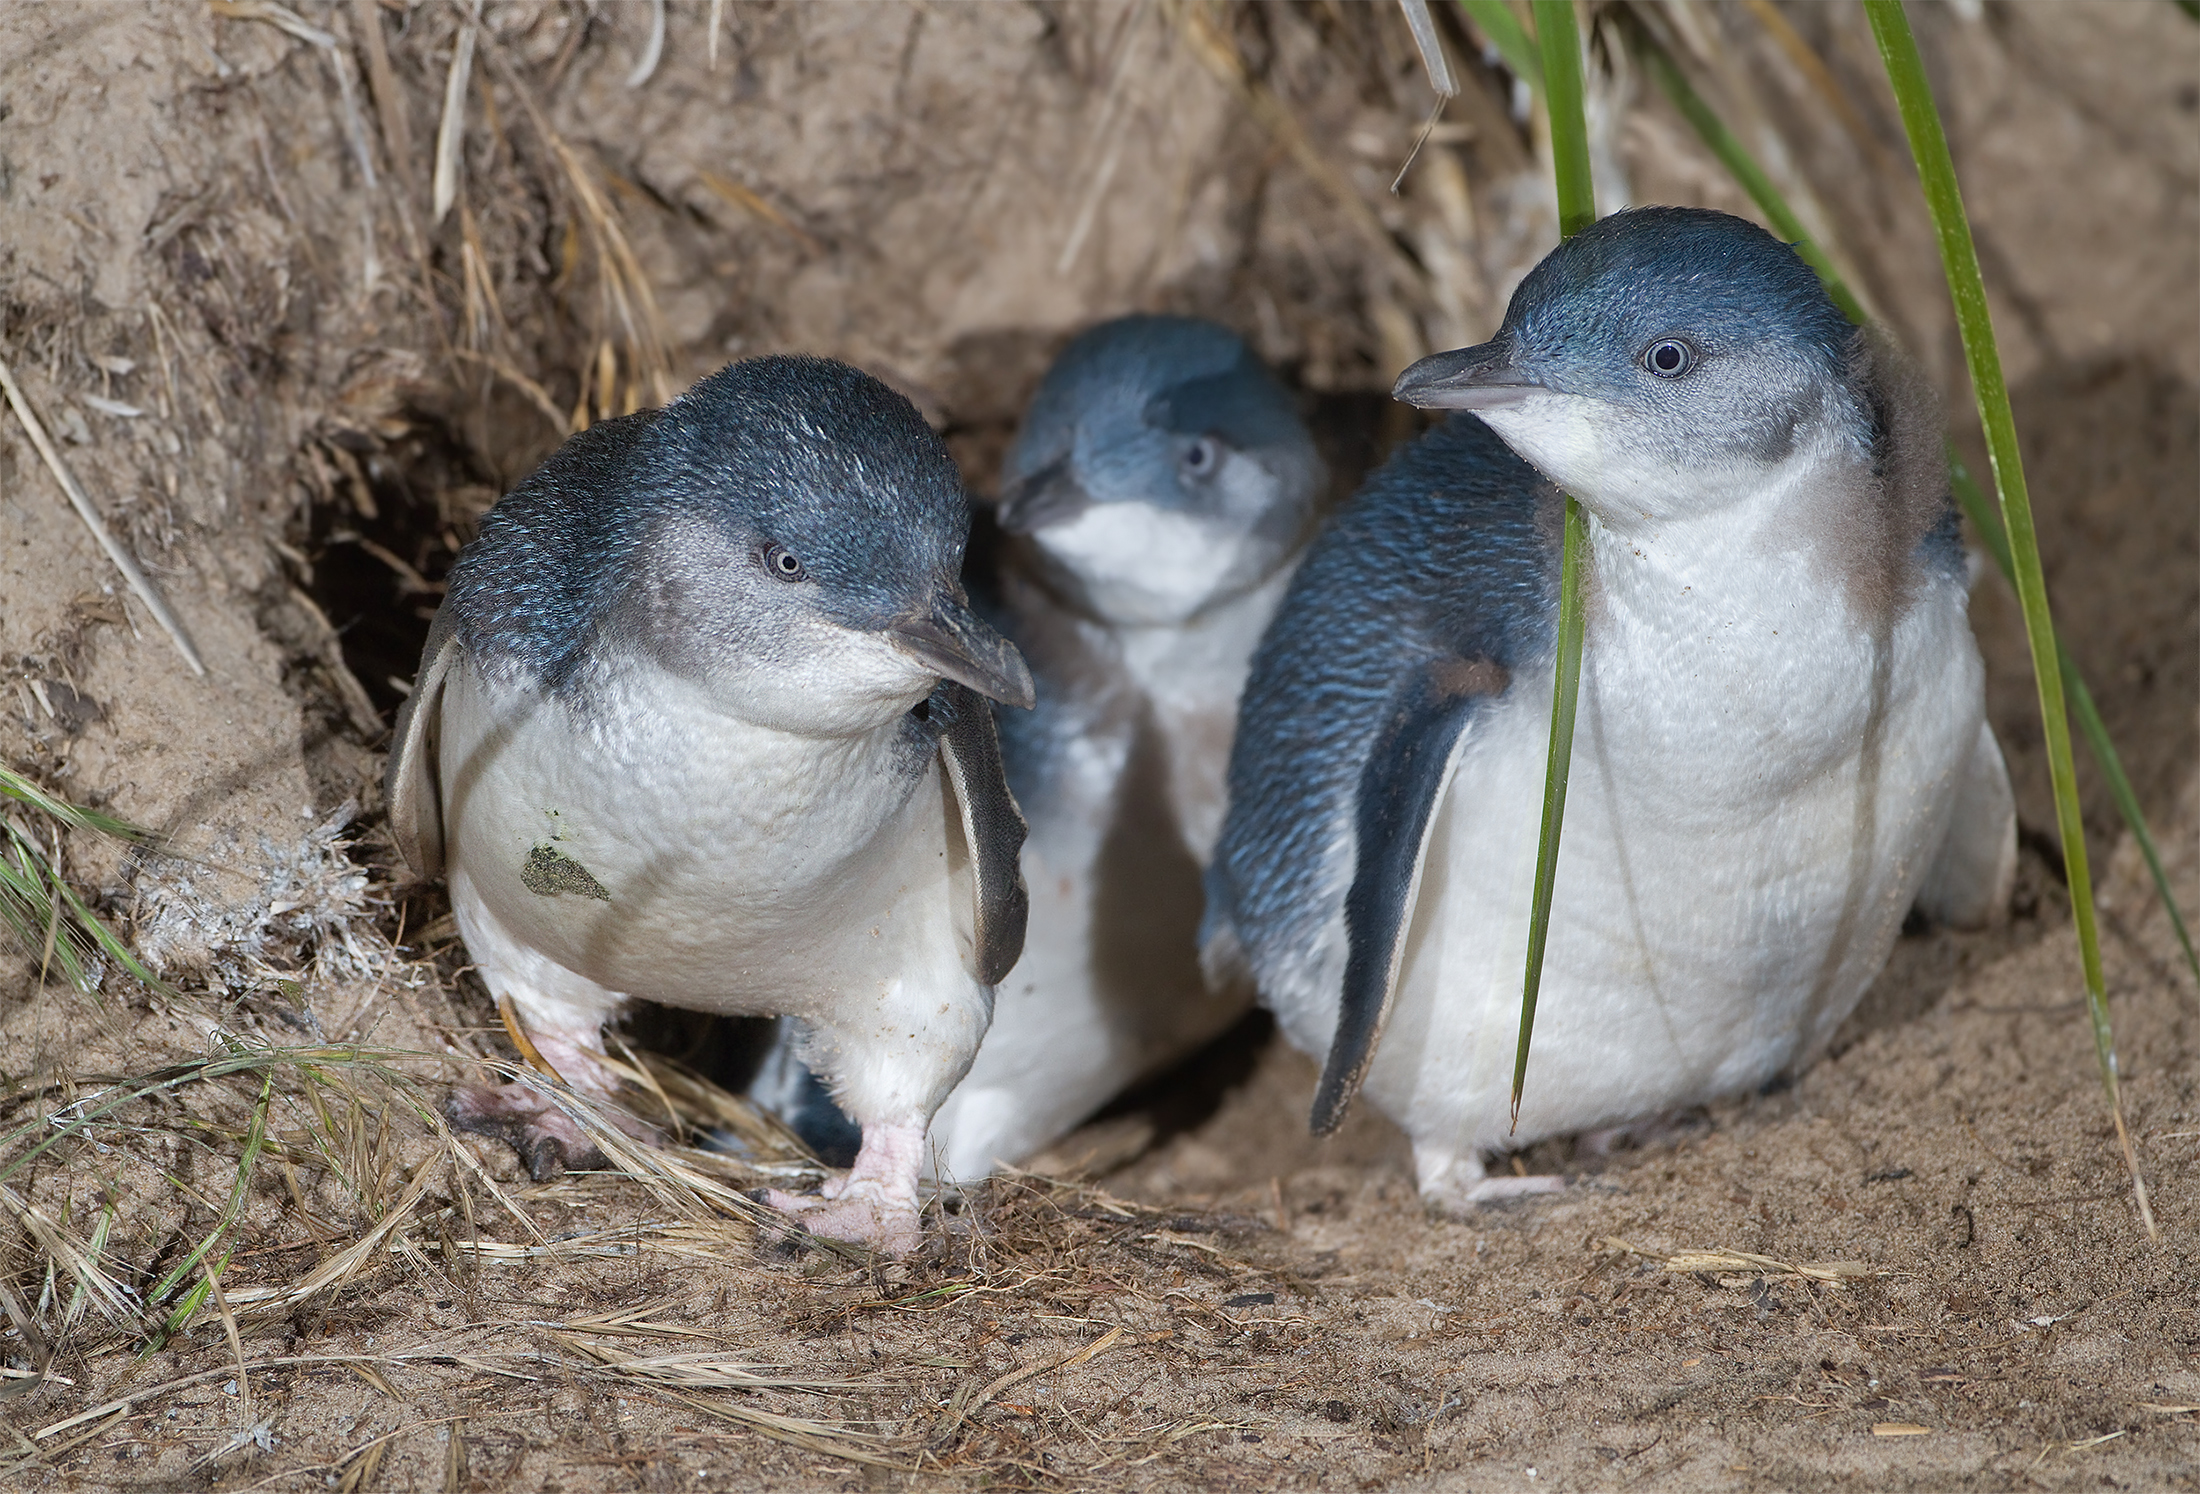 HQ Fairy Penguin Wallpapers | File 2631.72Kb